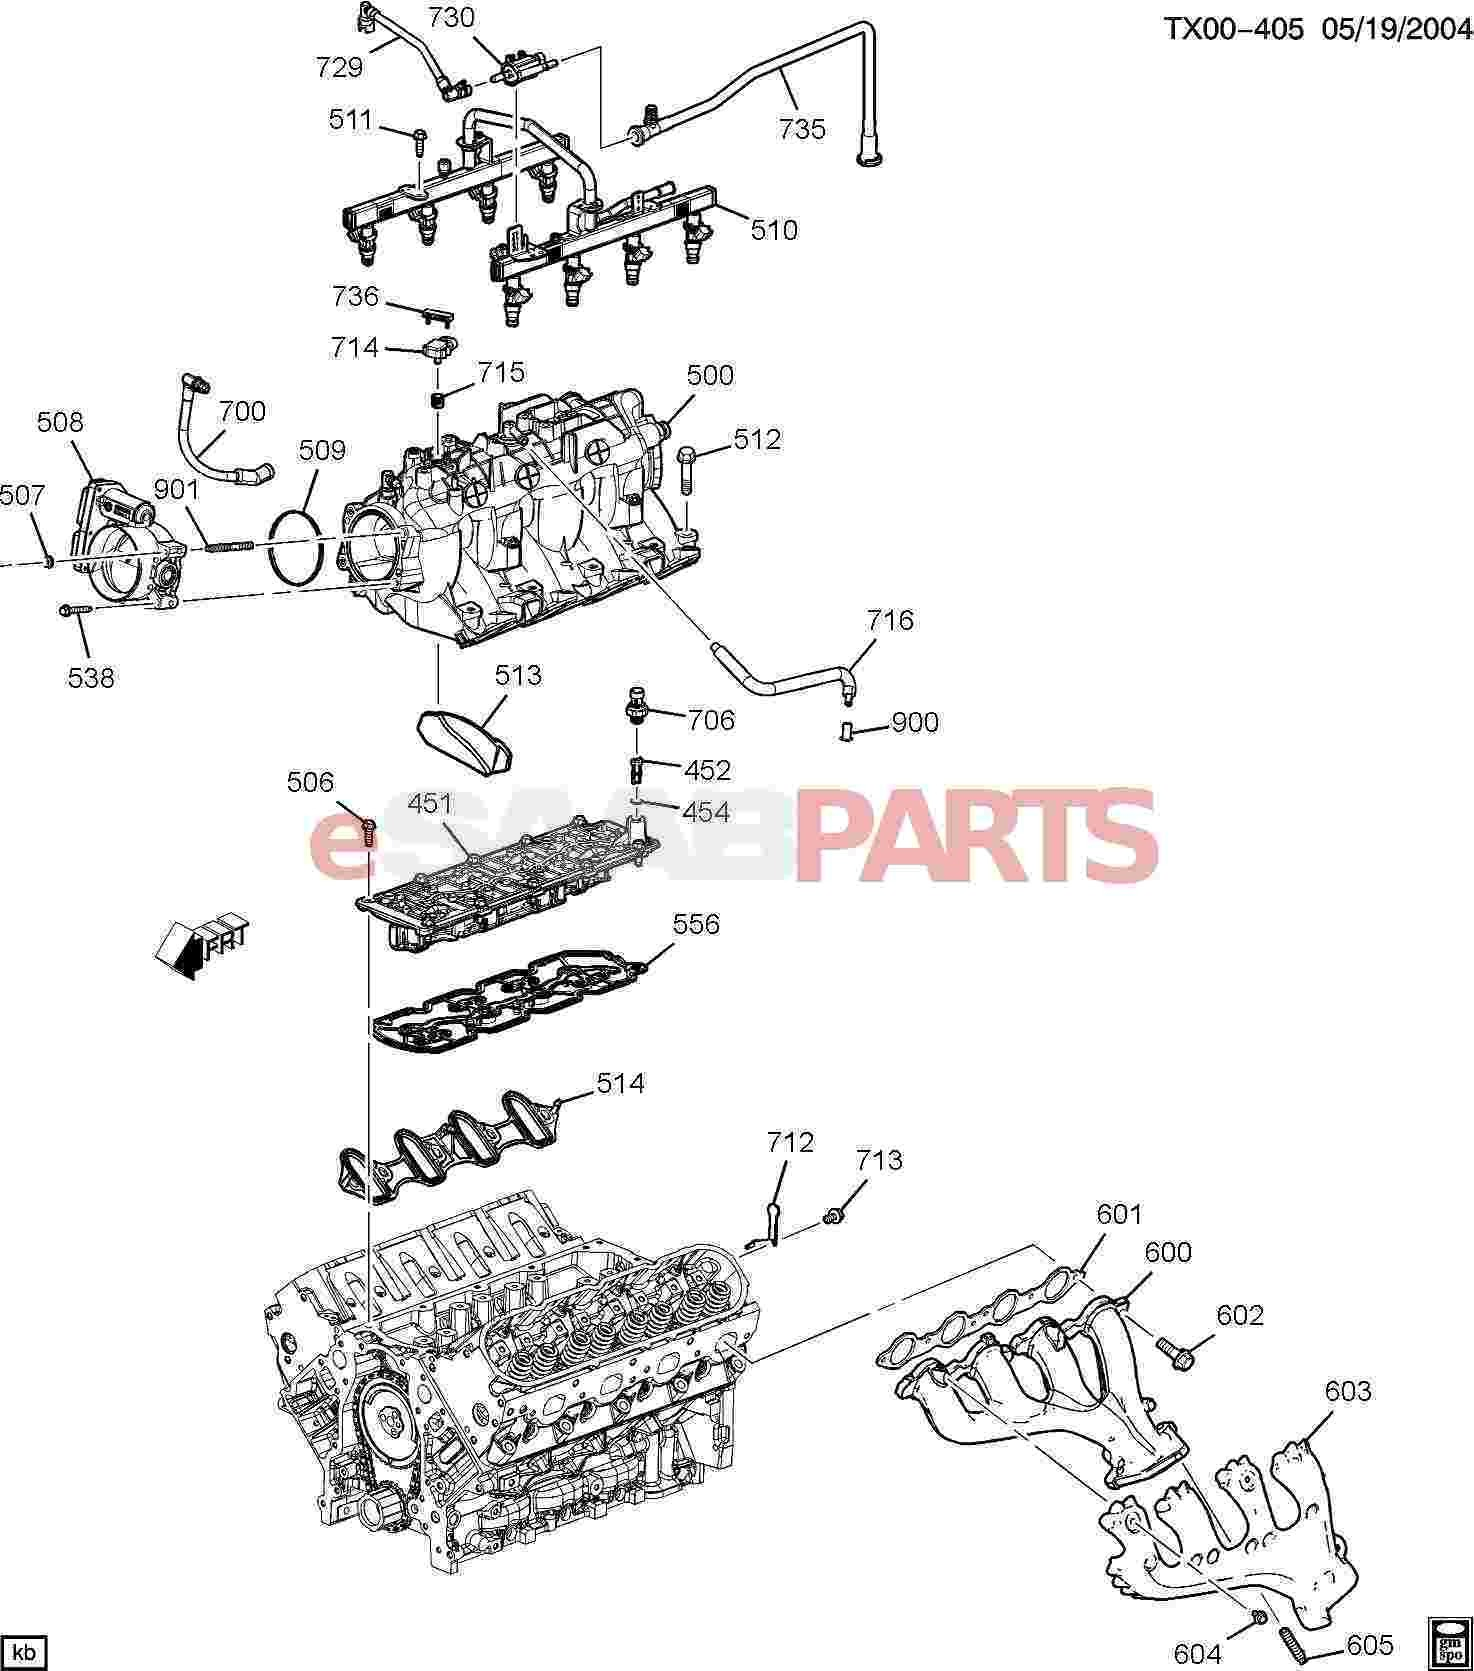 2001 Blazer Engine Diagram 1997 Chevy S10 Wiring Diagram